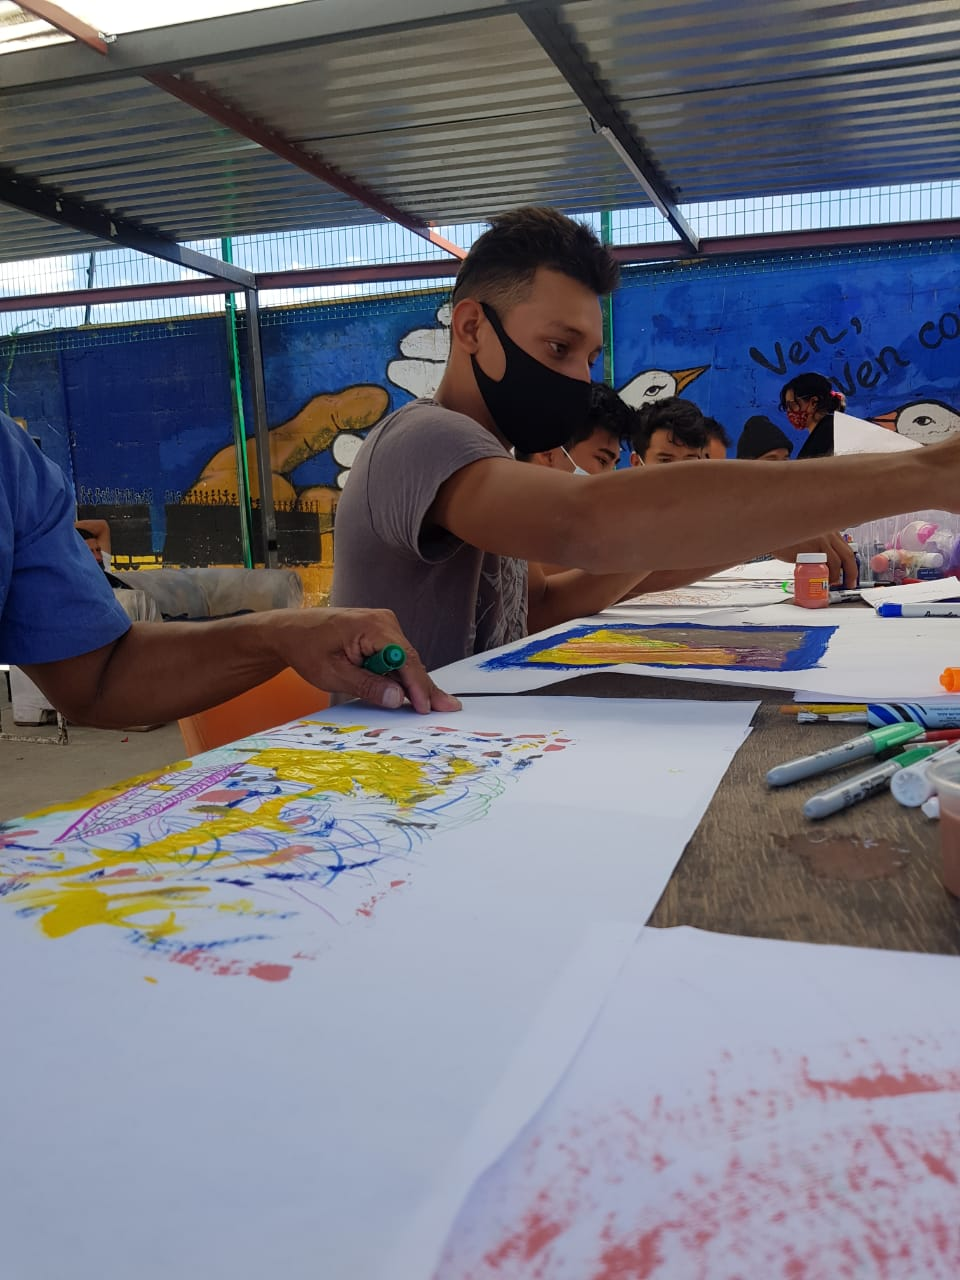 A row of workshop participants sit at a long table drawing and painting on large sheets of paper